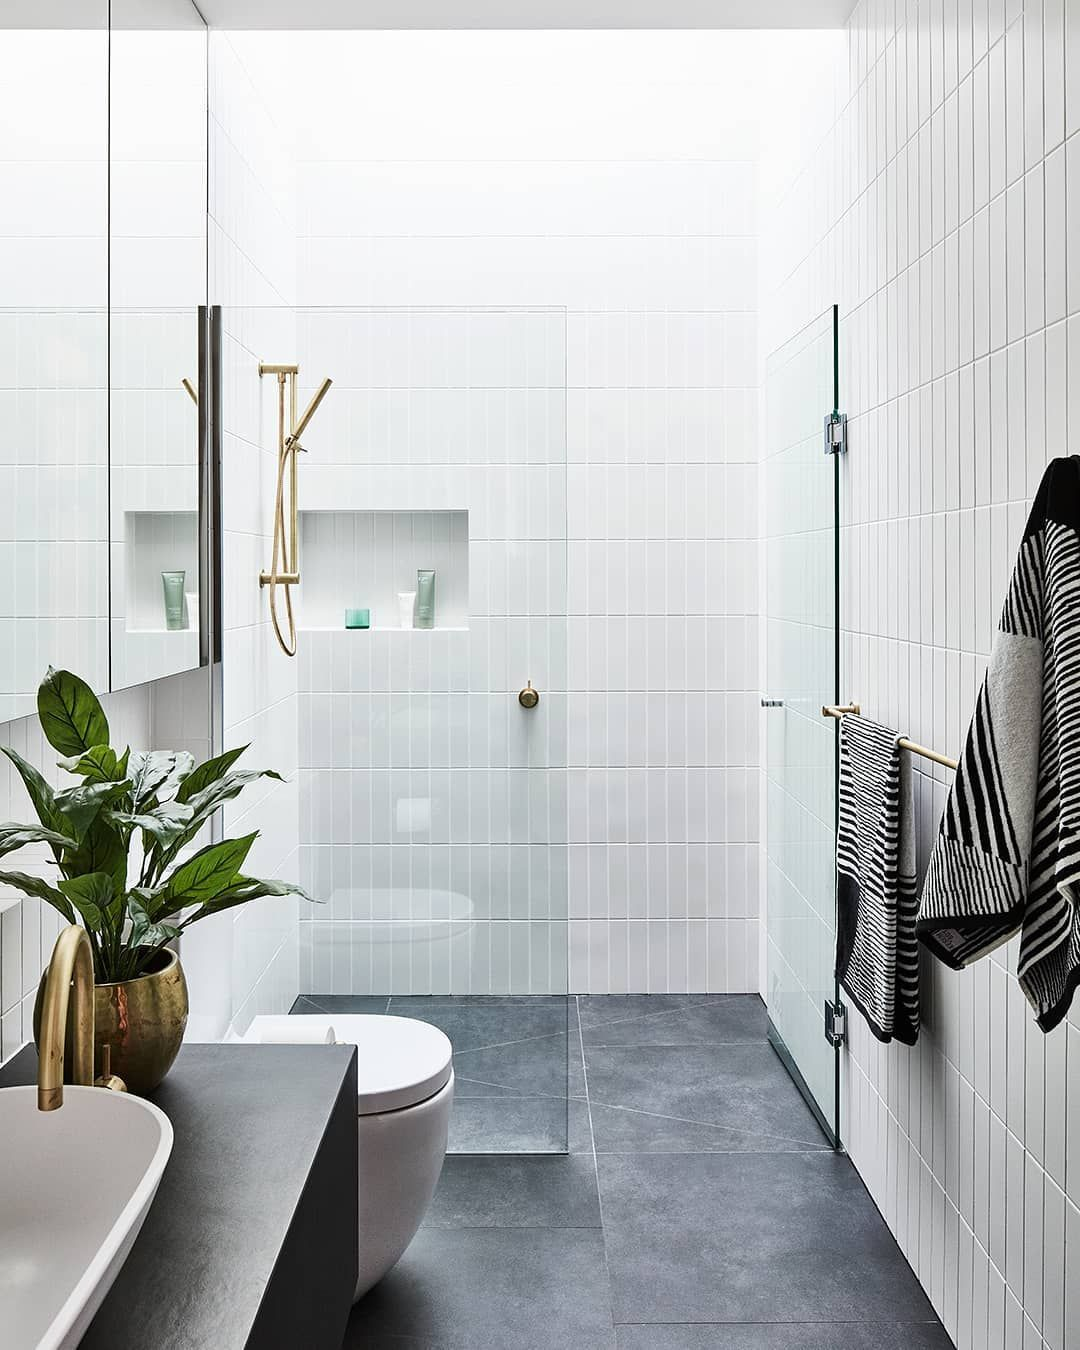 Reece Bathrooms On Instagram Make Your Narrow Space Work Harder With A Practical Design And A Small Bathroom Interior Reece Bathroom Narrow Bathroom Designs